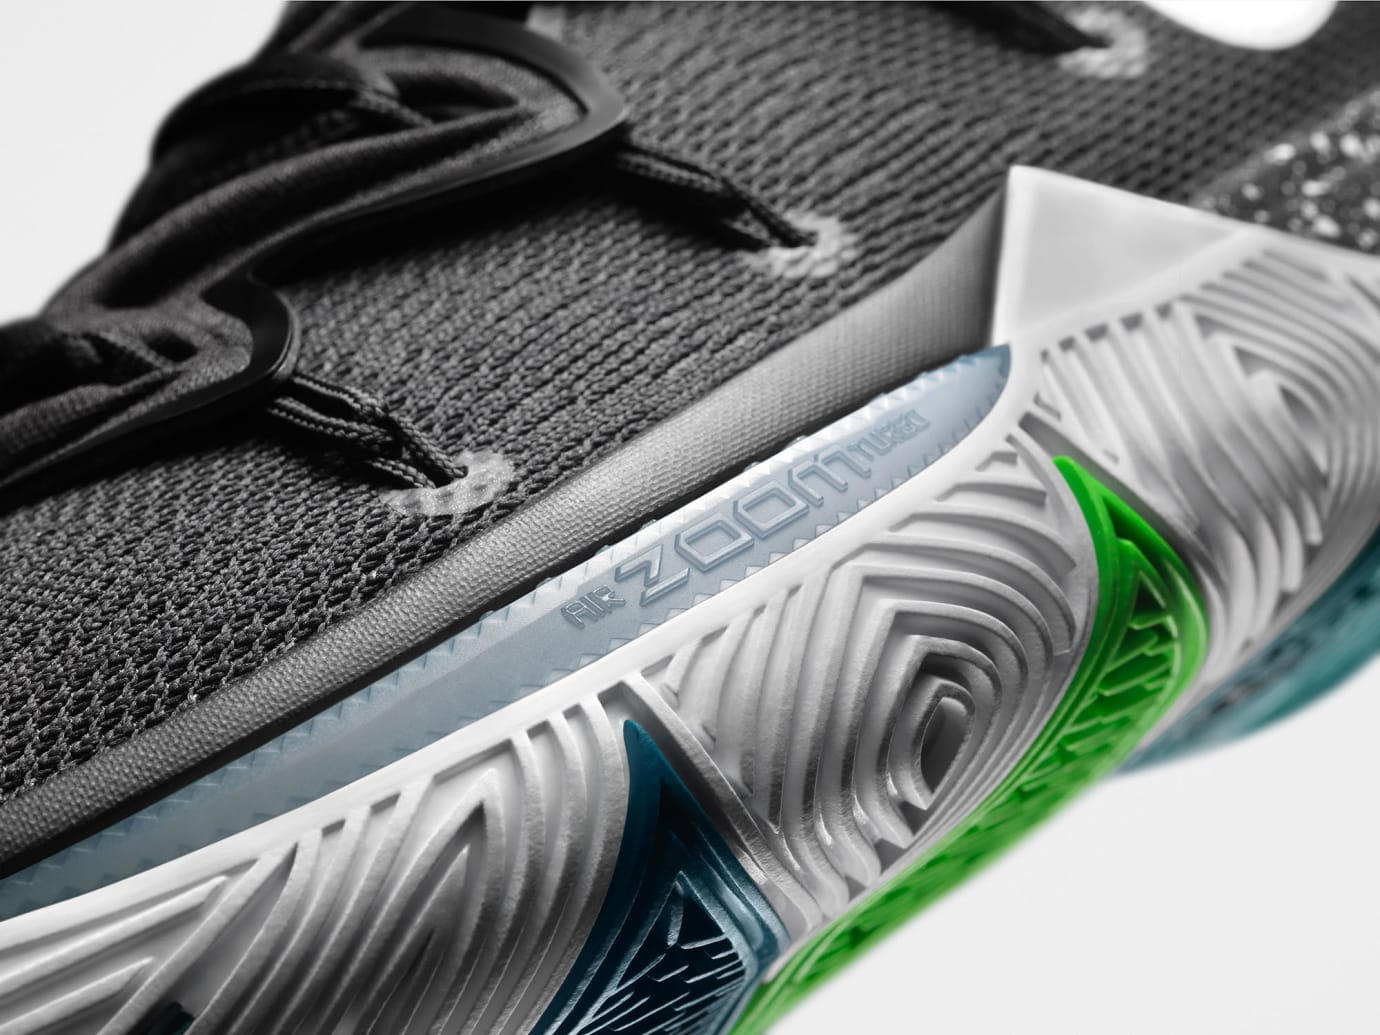 Nike Kyrie 5 Forefoot